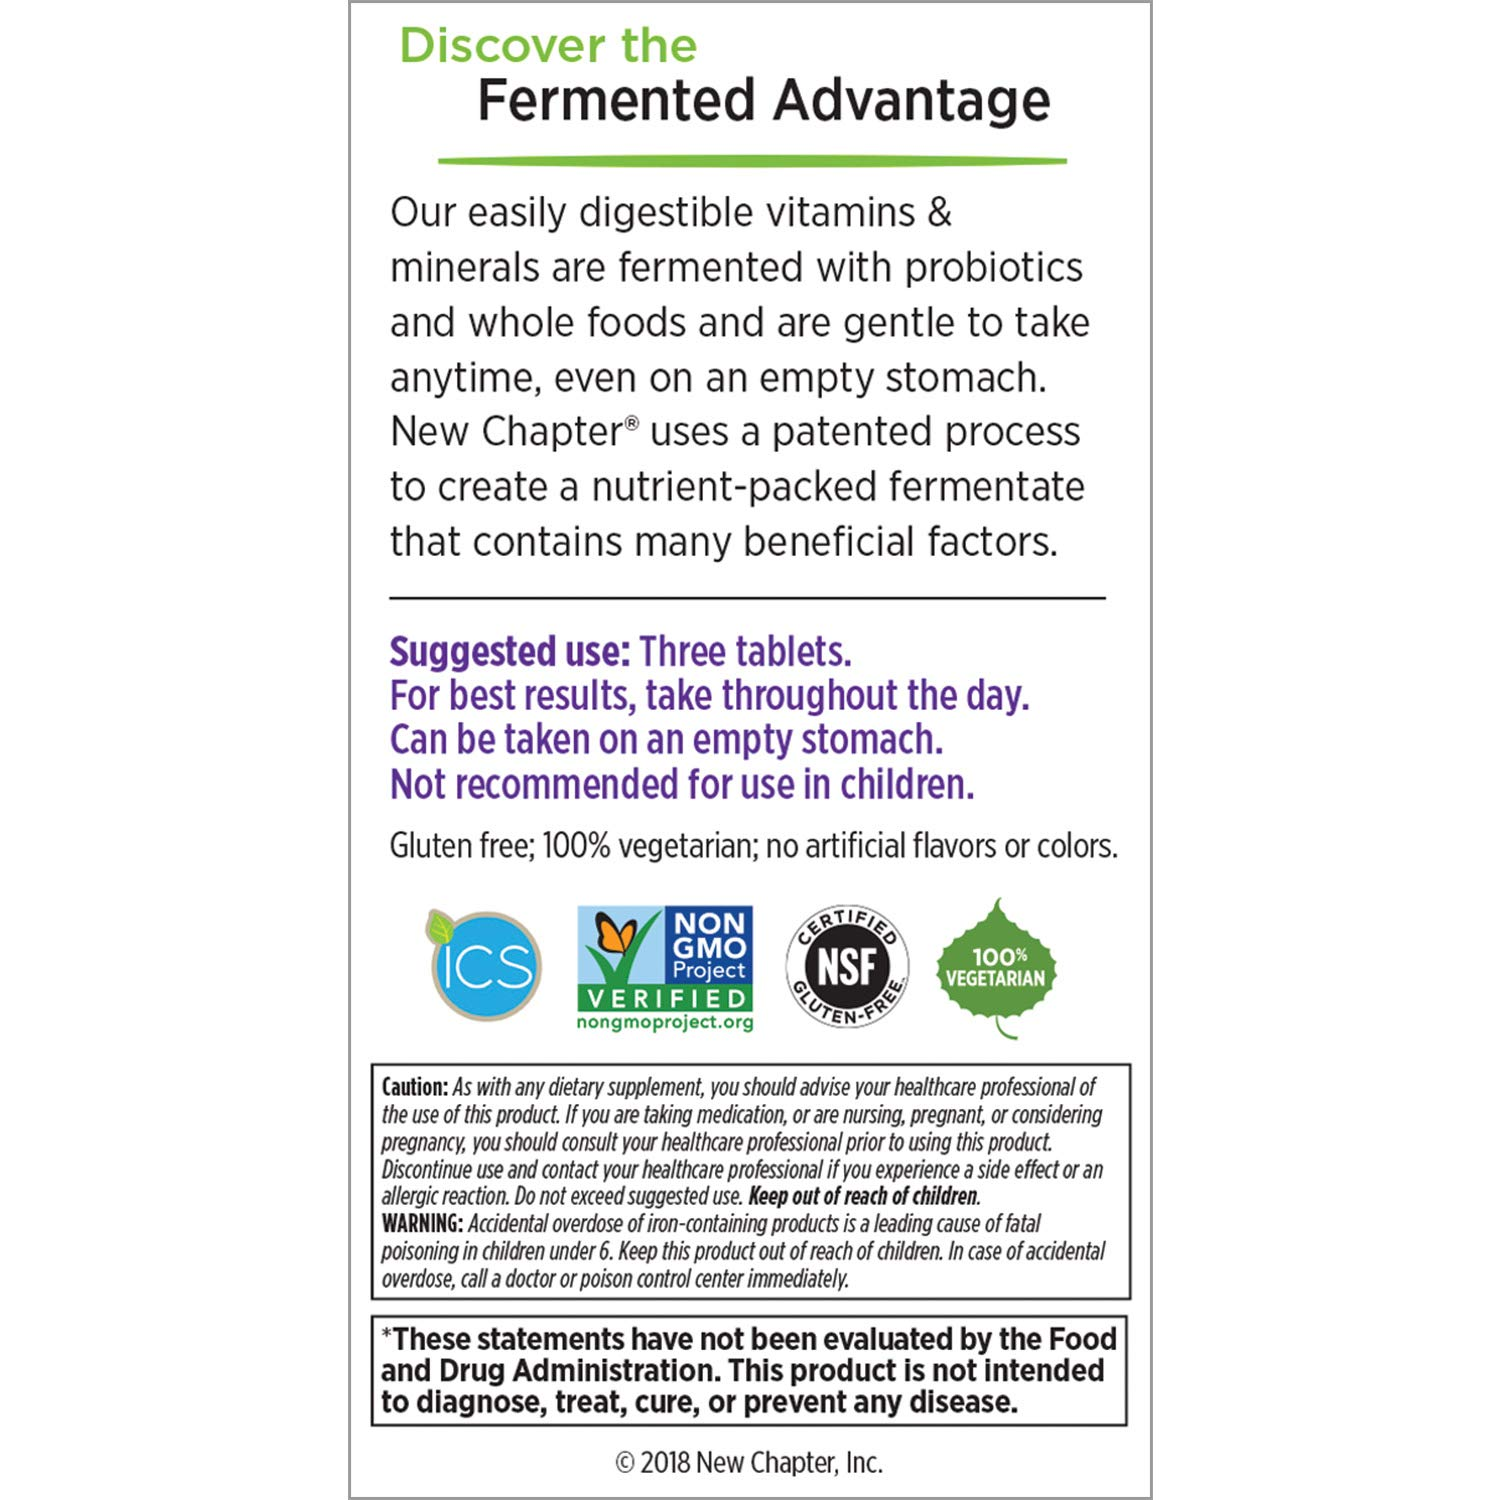 New Chapter Perfect Prenatal Vitamins, 270 ct, Organic Non-GMO Ingredients - Eases Morning Sickness with Ginger, Best Prenatal Vitamins Fermented with Wholefoods for Mom & Baby - (Packaging May Vary) by New Chapter (Image #11)